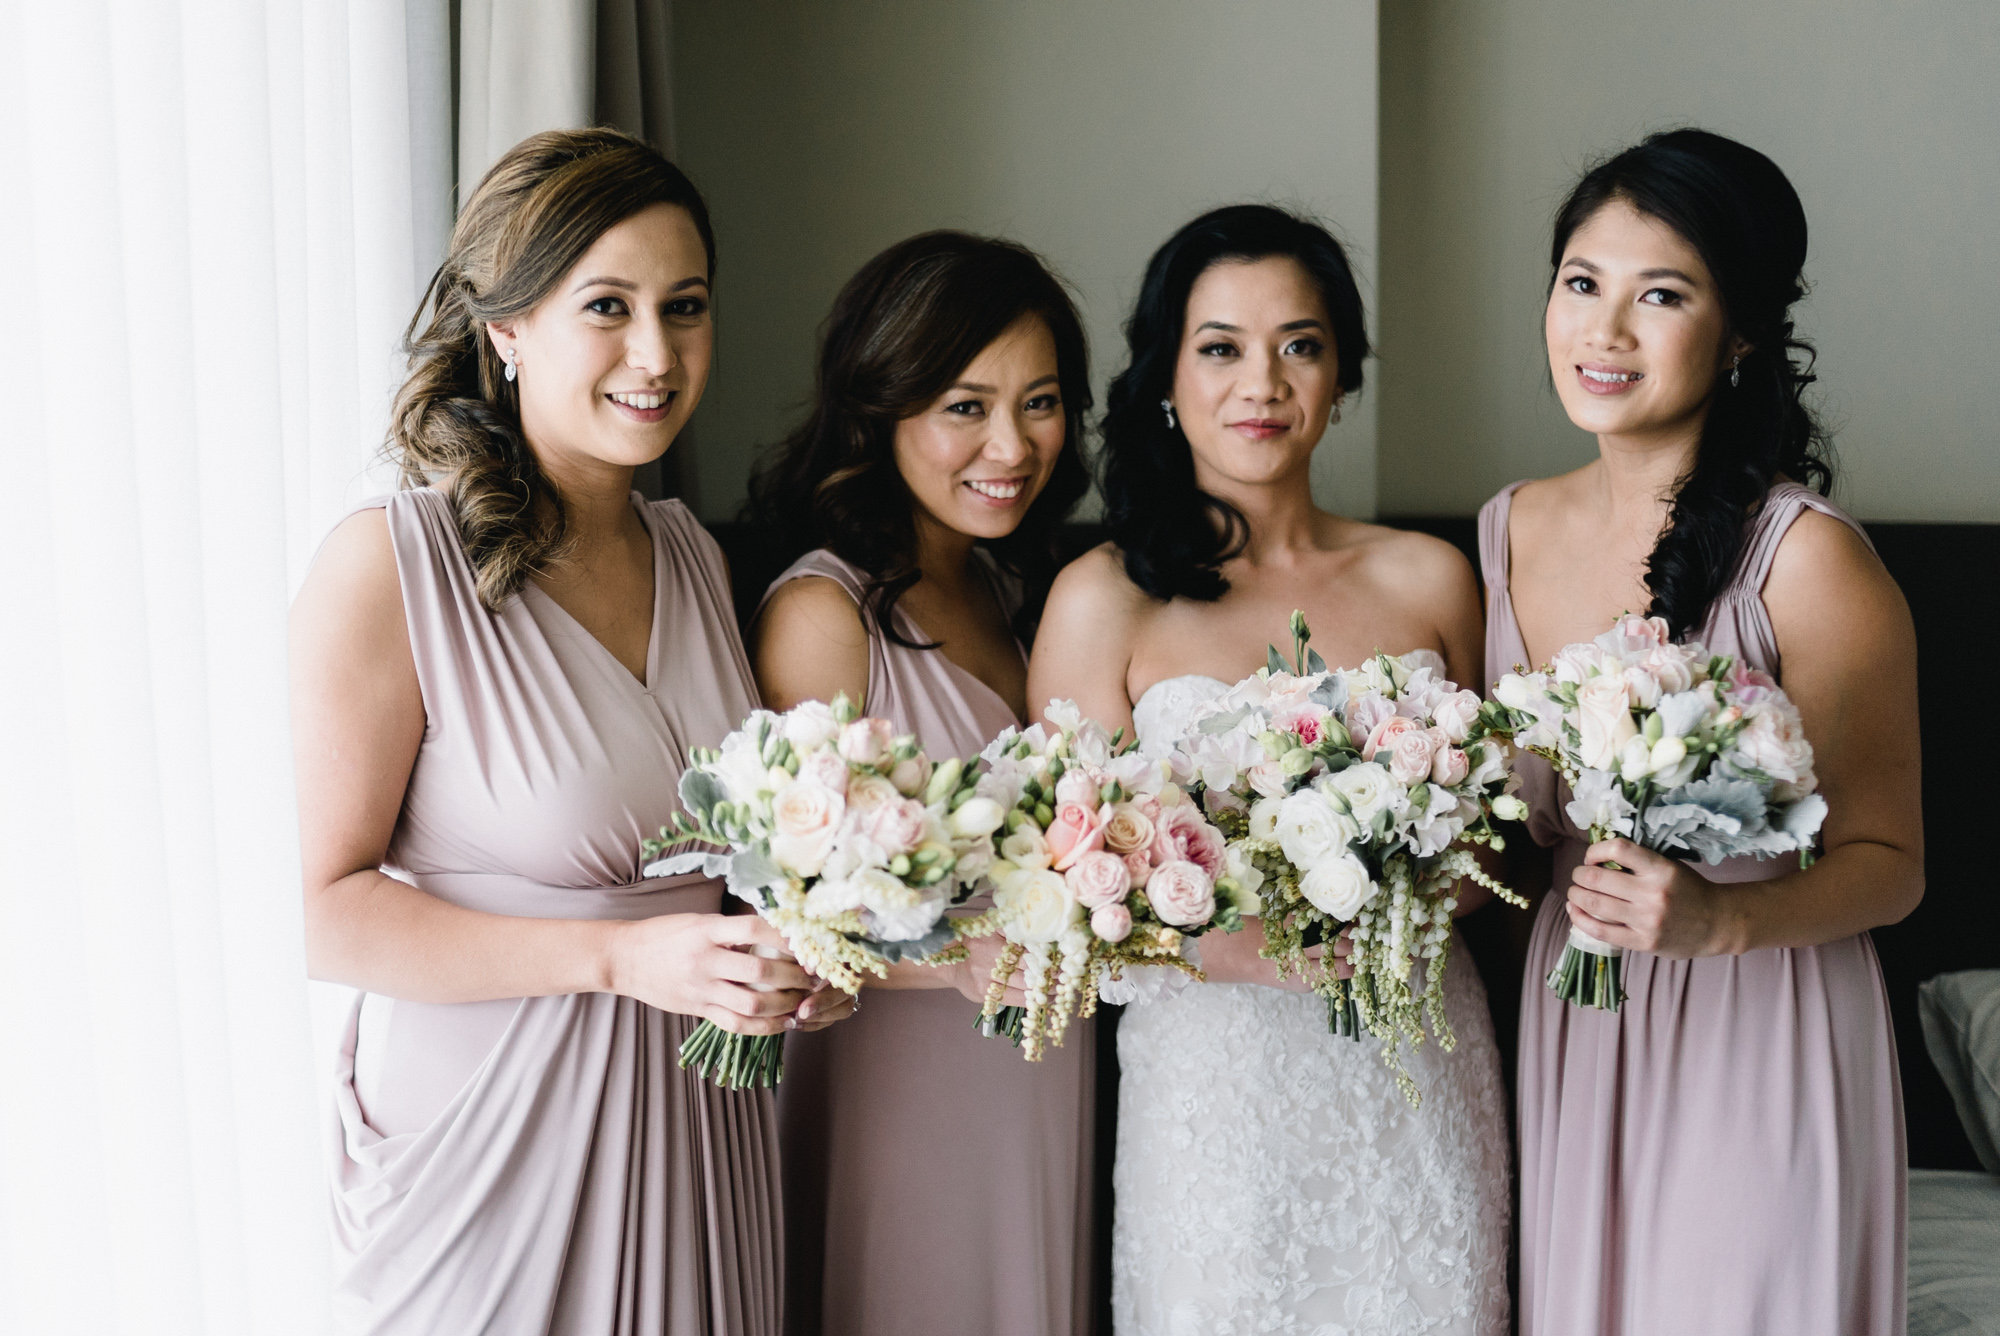 Arlyn with her bridesmaids